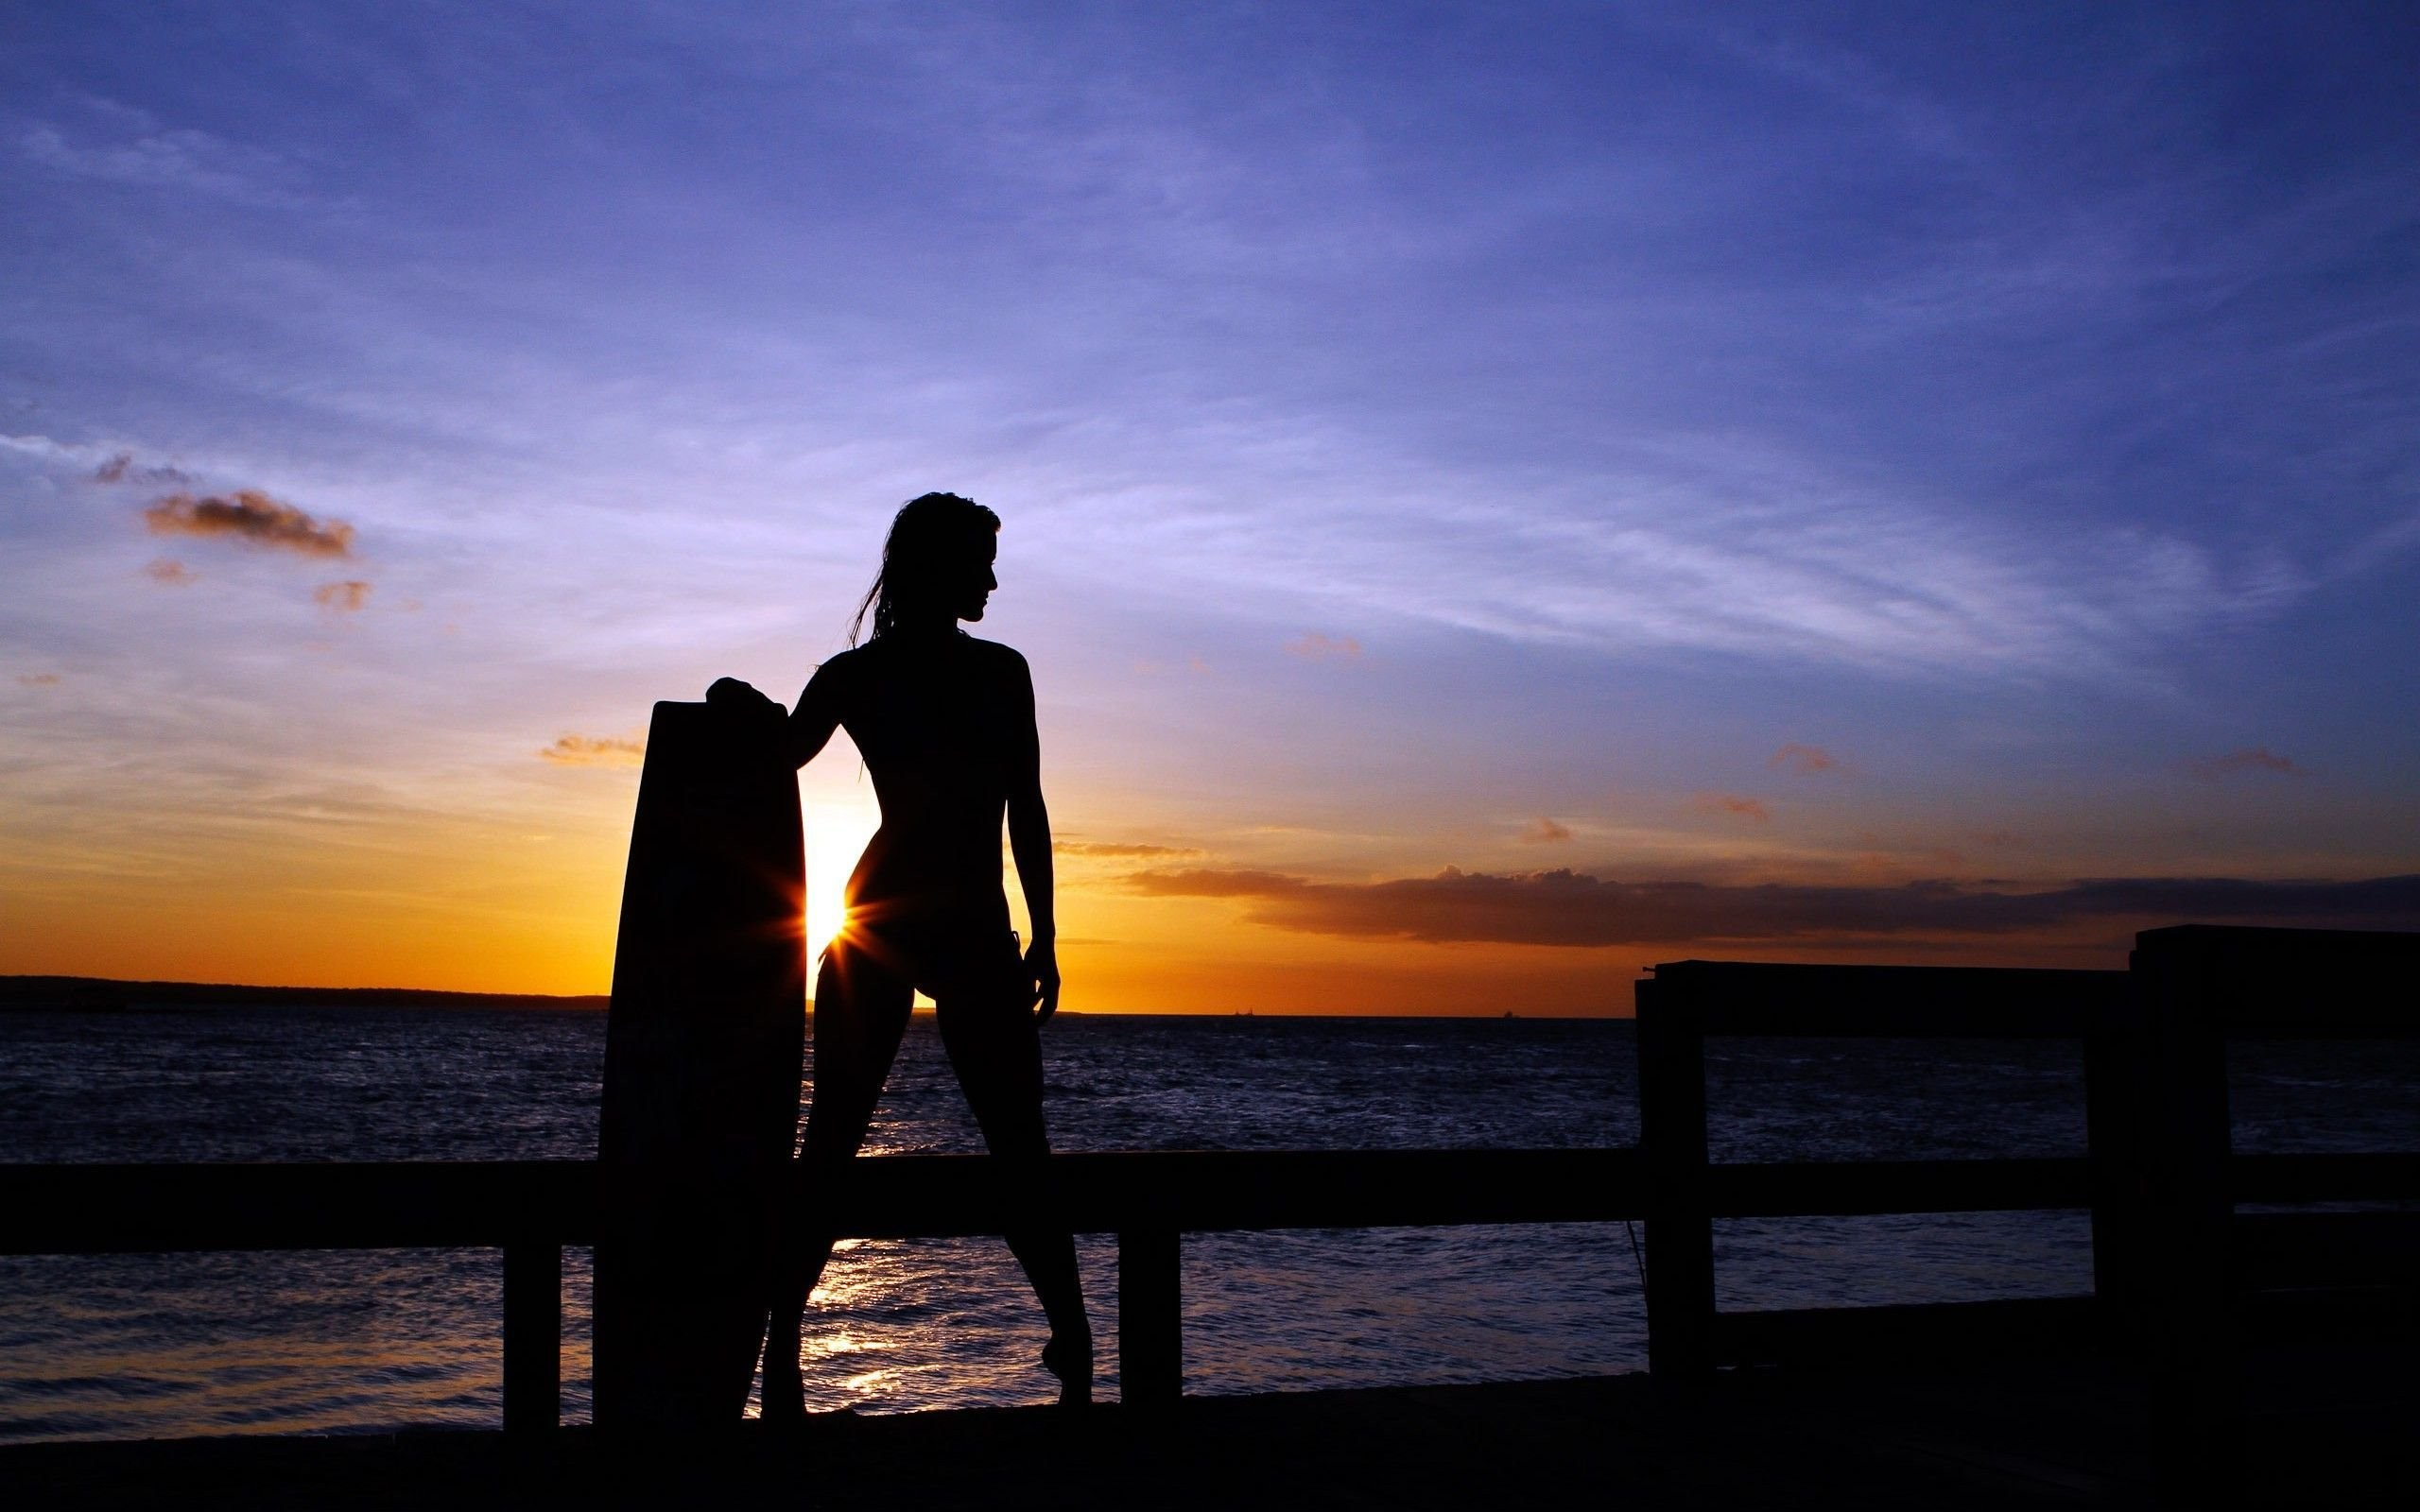 Woman Surfer In The Sunset